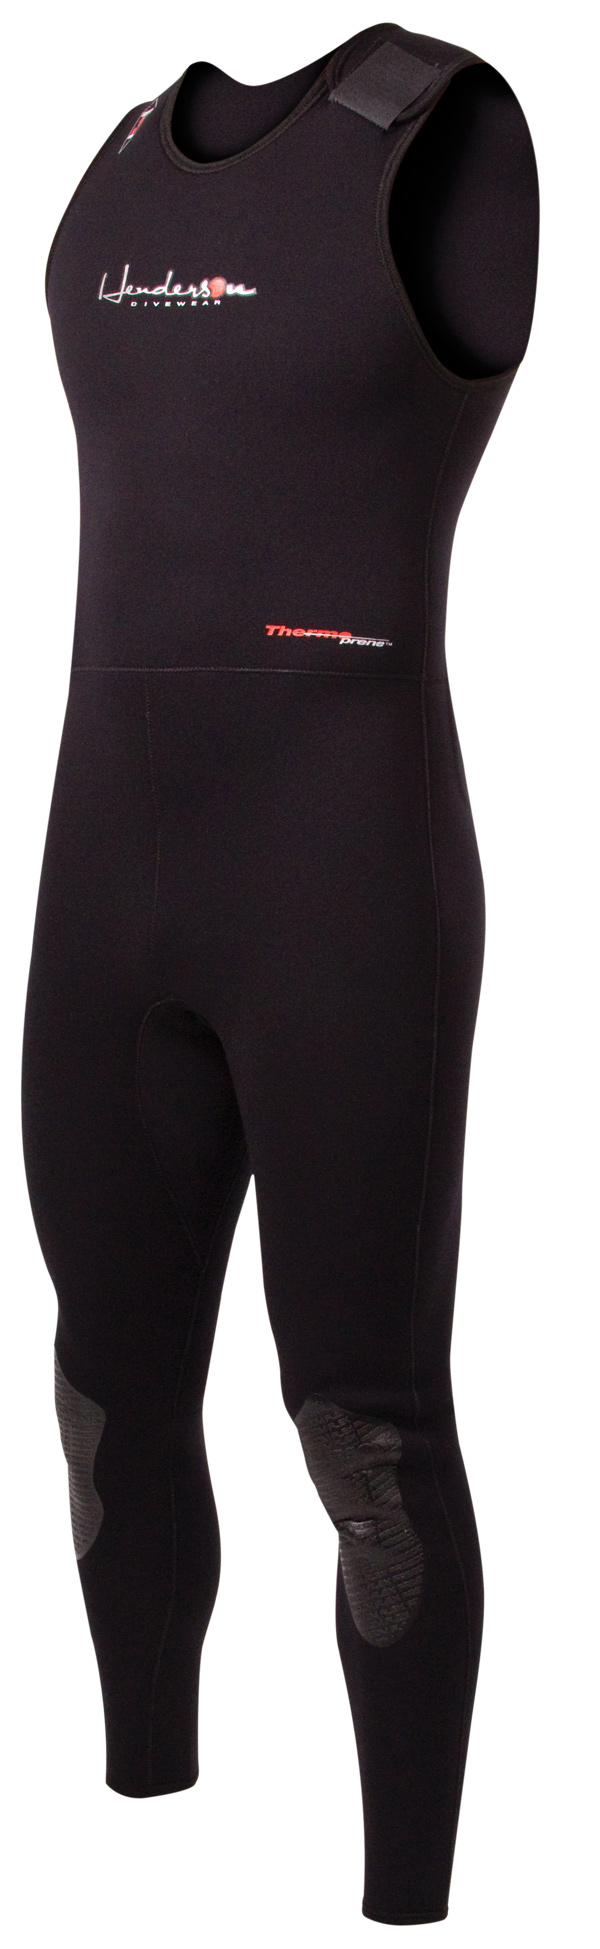 Henderson Thermoprene 3mm Men's Long John Wetsuit - Combo